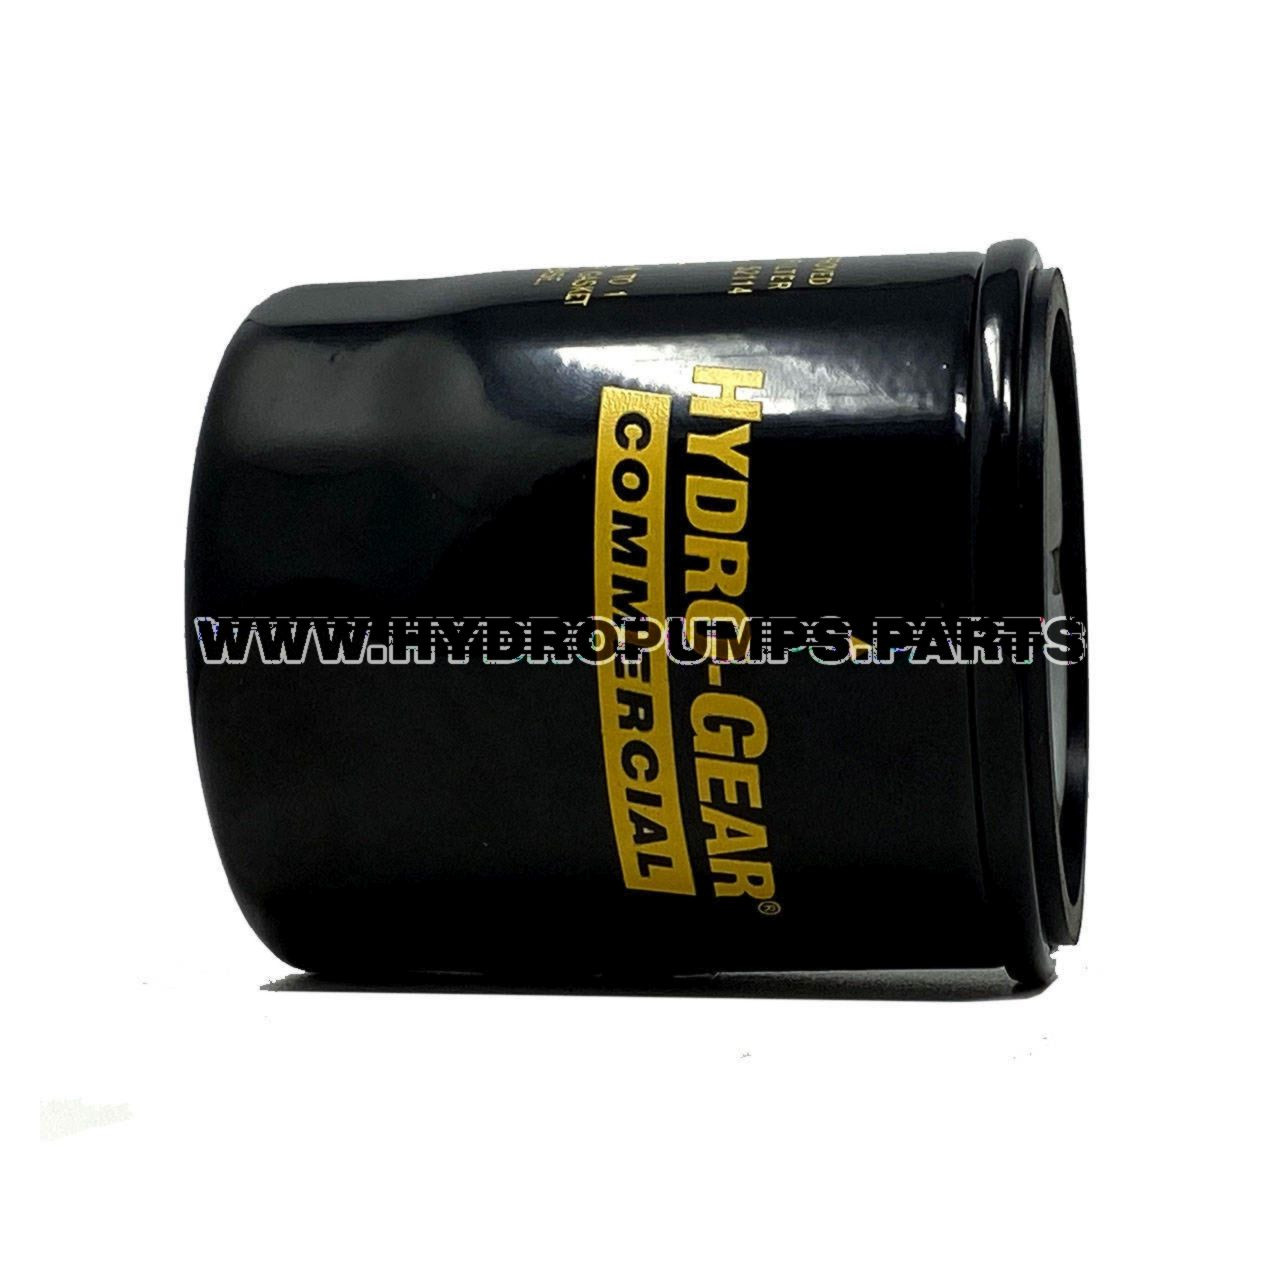 Hydro Gear 52114 - Filter Spin-On 2.6 X 3.0 - Image 5